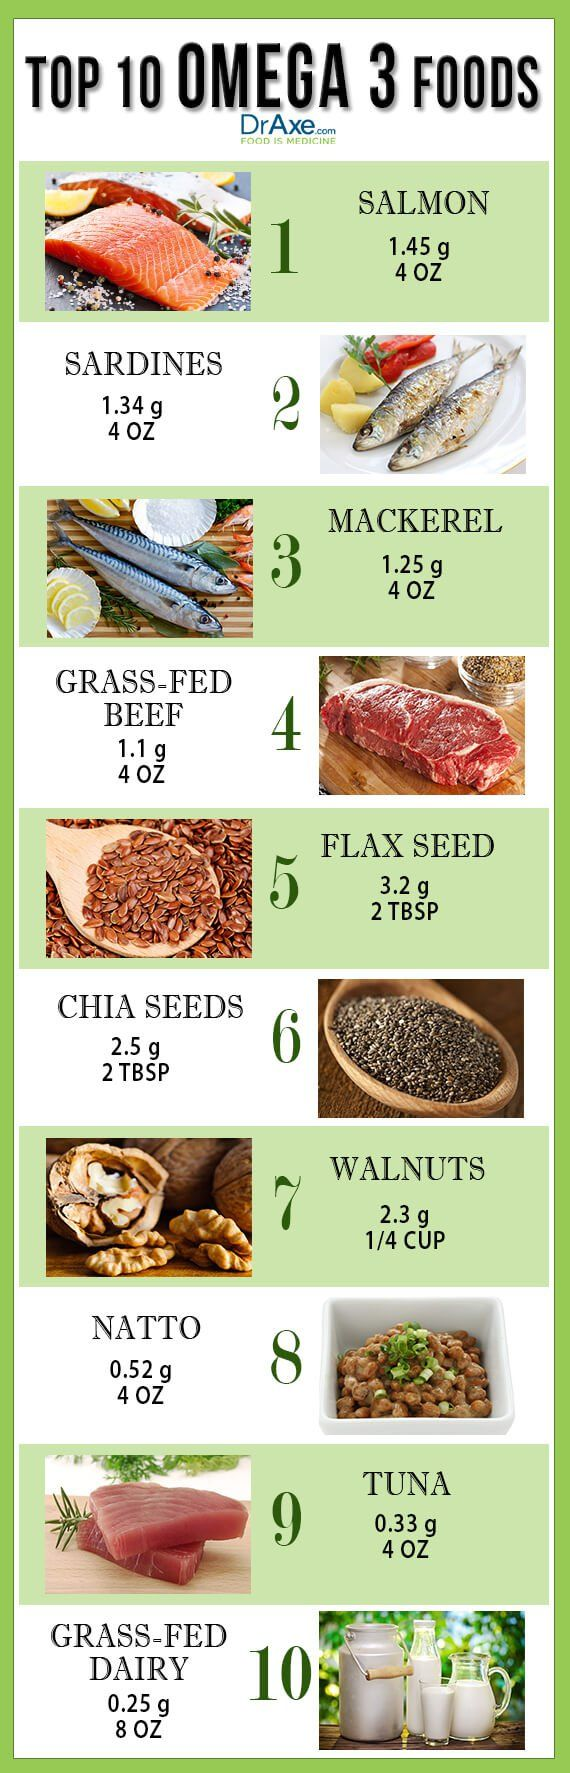 Best 25 food pyramid ideas on pinterest healthy diet for Best fish to eat for weight loss